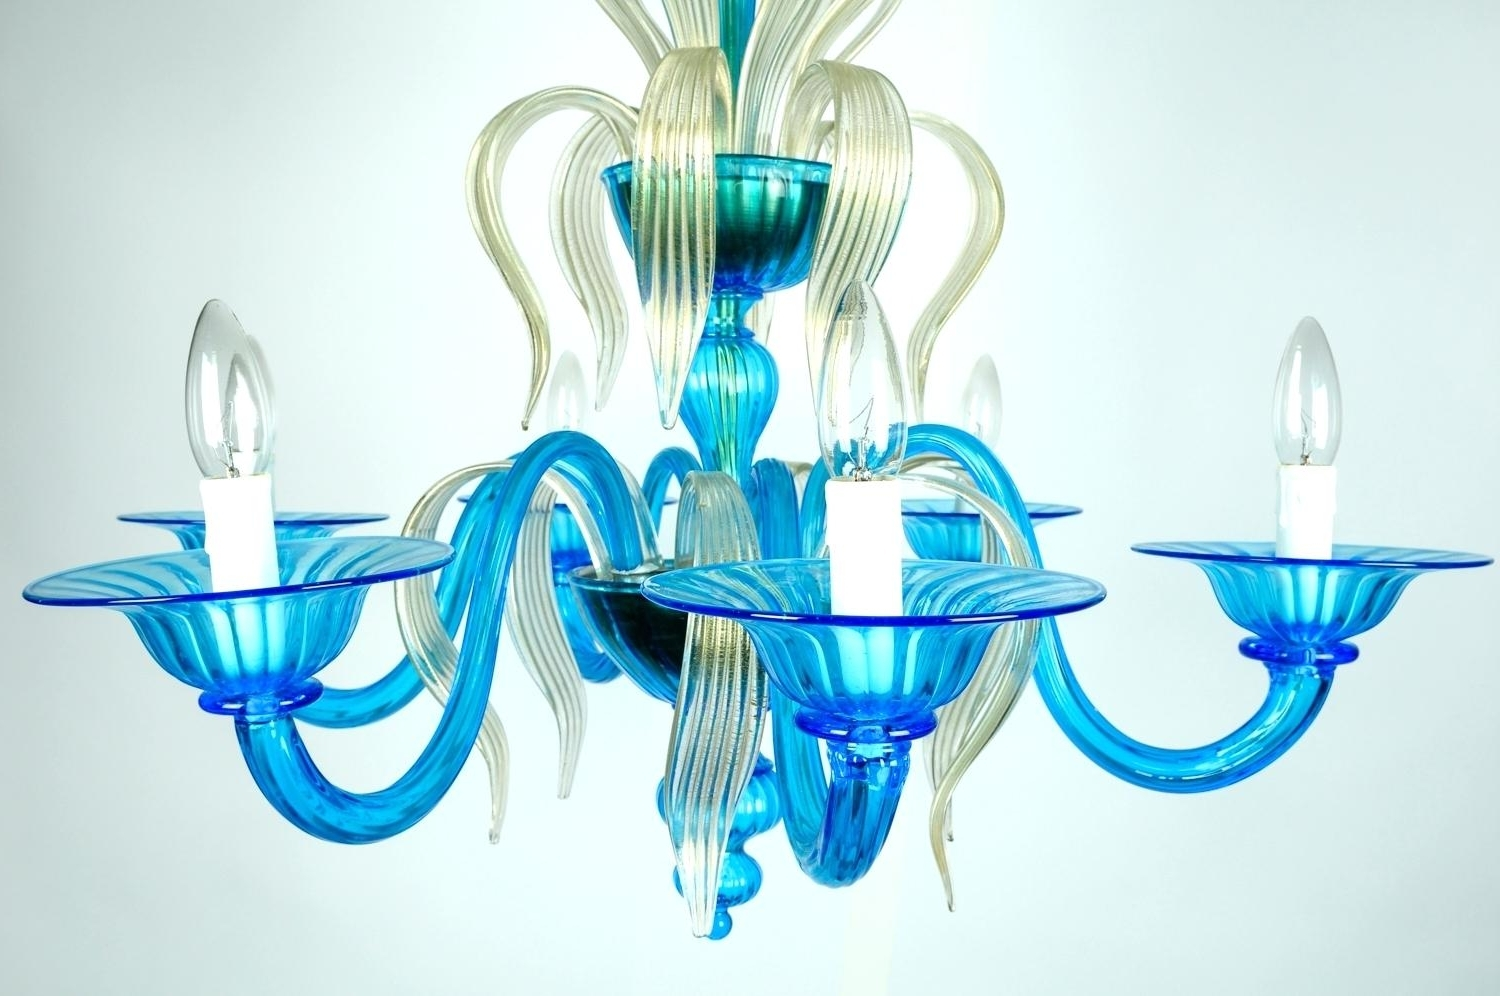 Hand Blown Glass Lighting Chandelier Chic Designer Crystal Latest Intended For Most Current Turquoise Blown Glass Chandeliers (View 6 of 20)